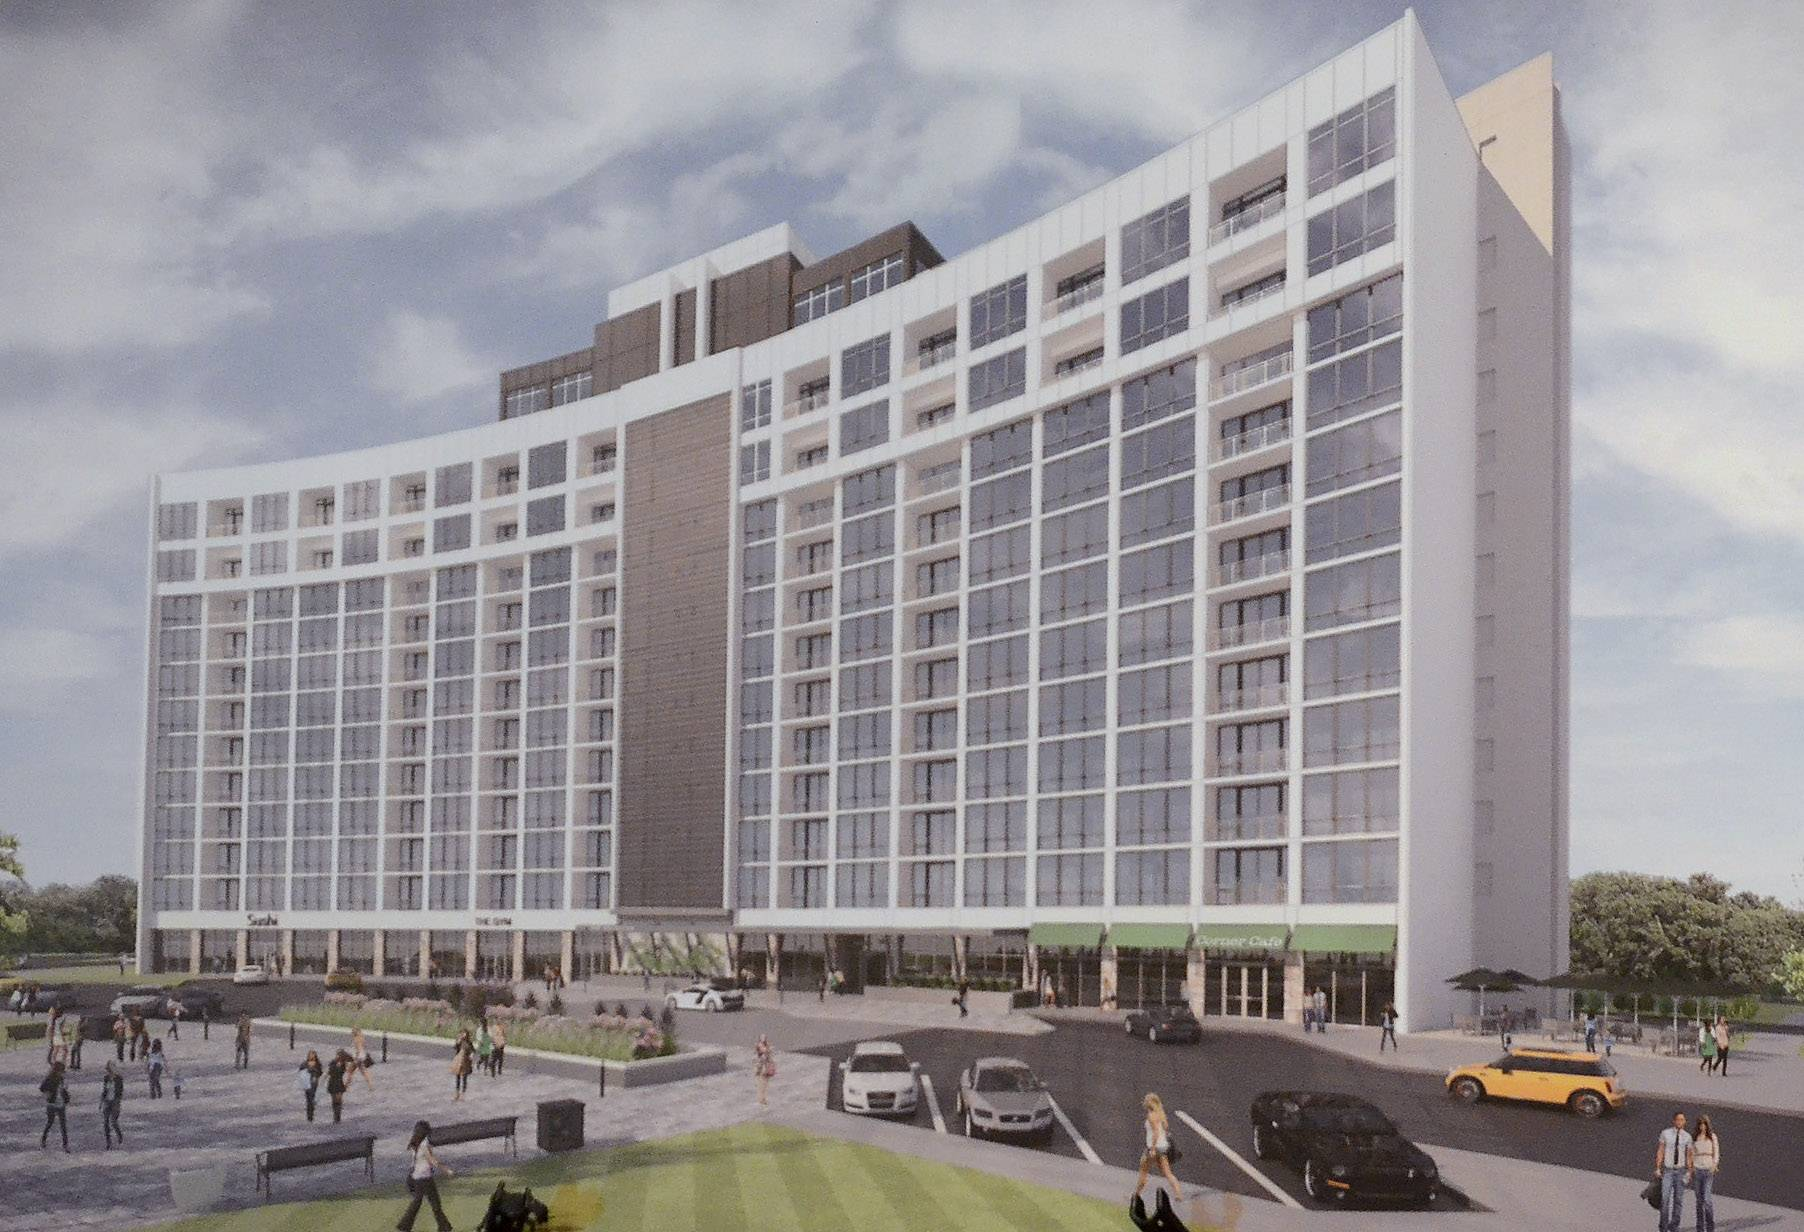 Bob Chwedyk/bchwedyk@dailyherald.comA rendering of One Arlington, a luxury apartment tower planned for Arlington Downs.